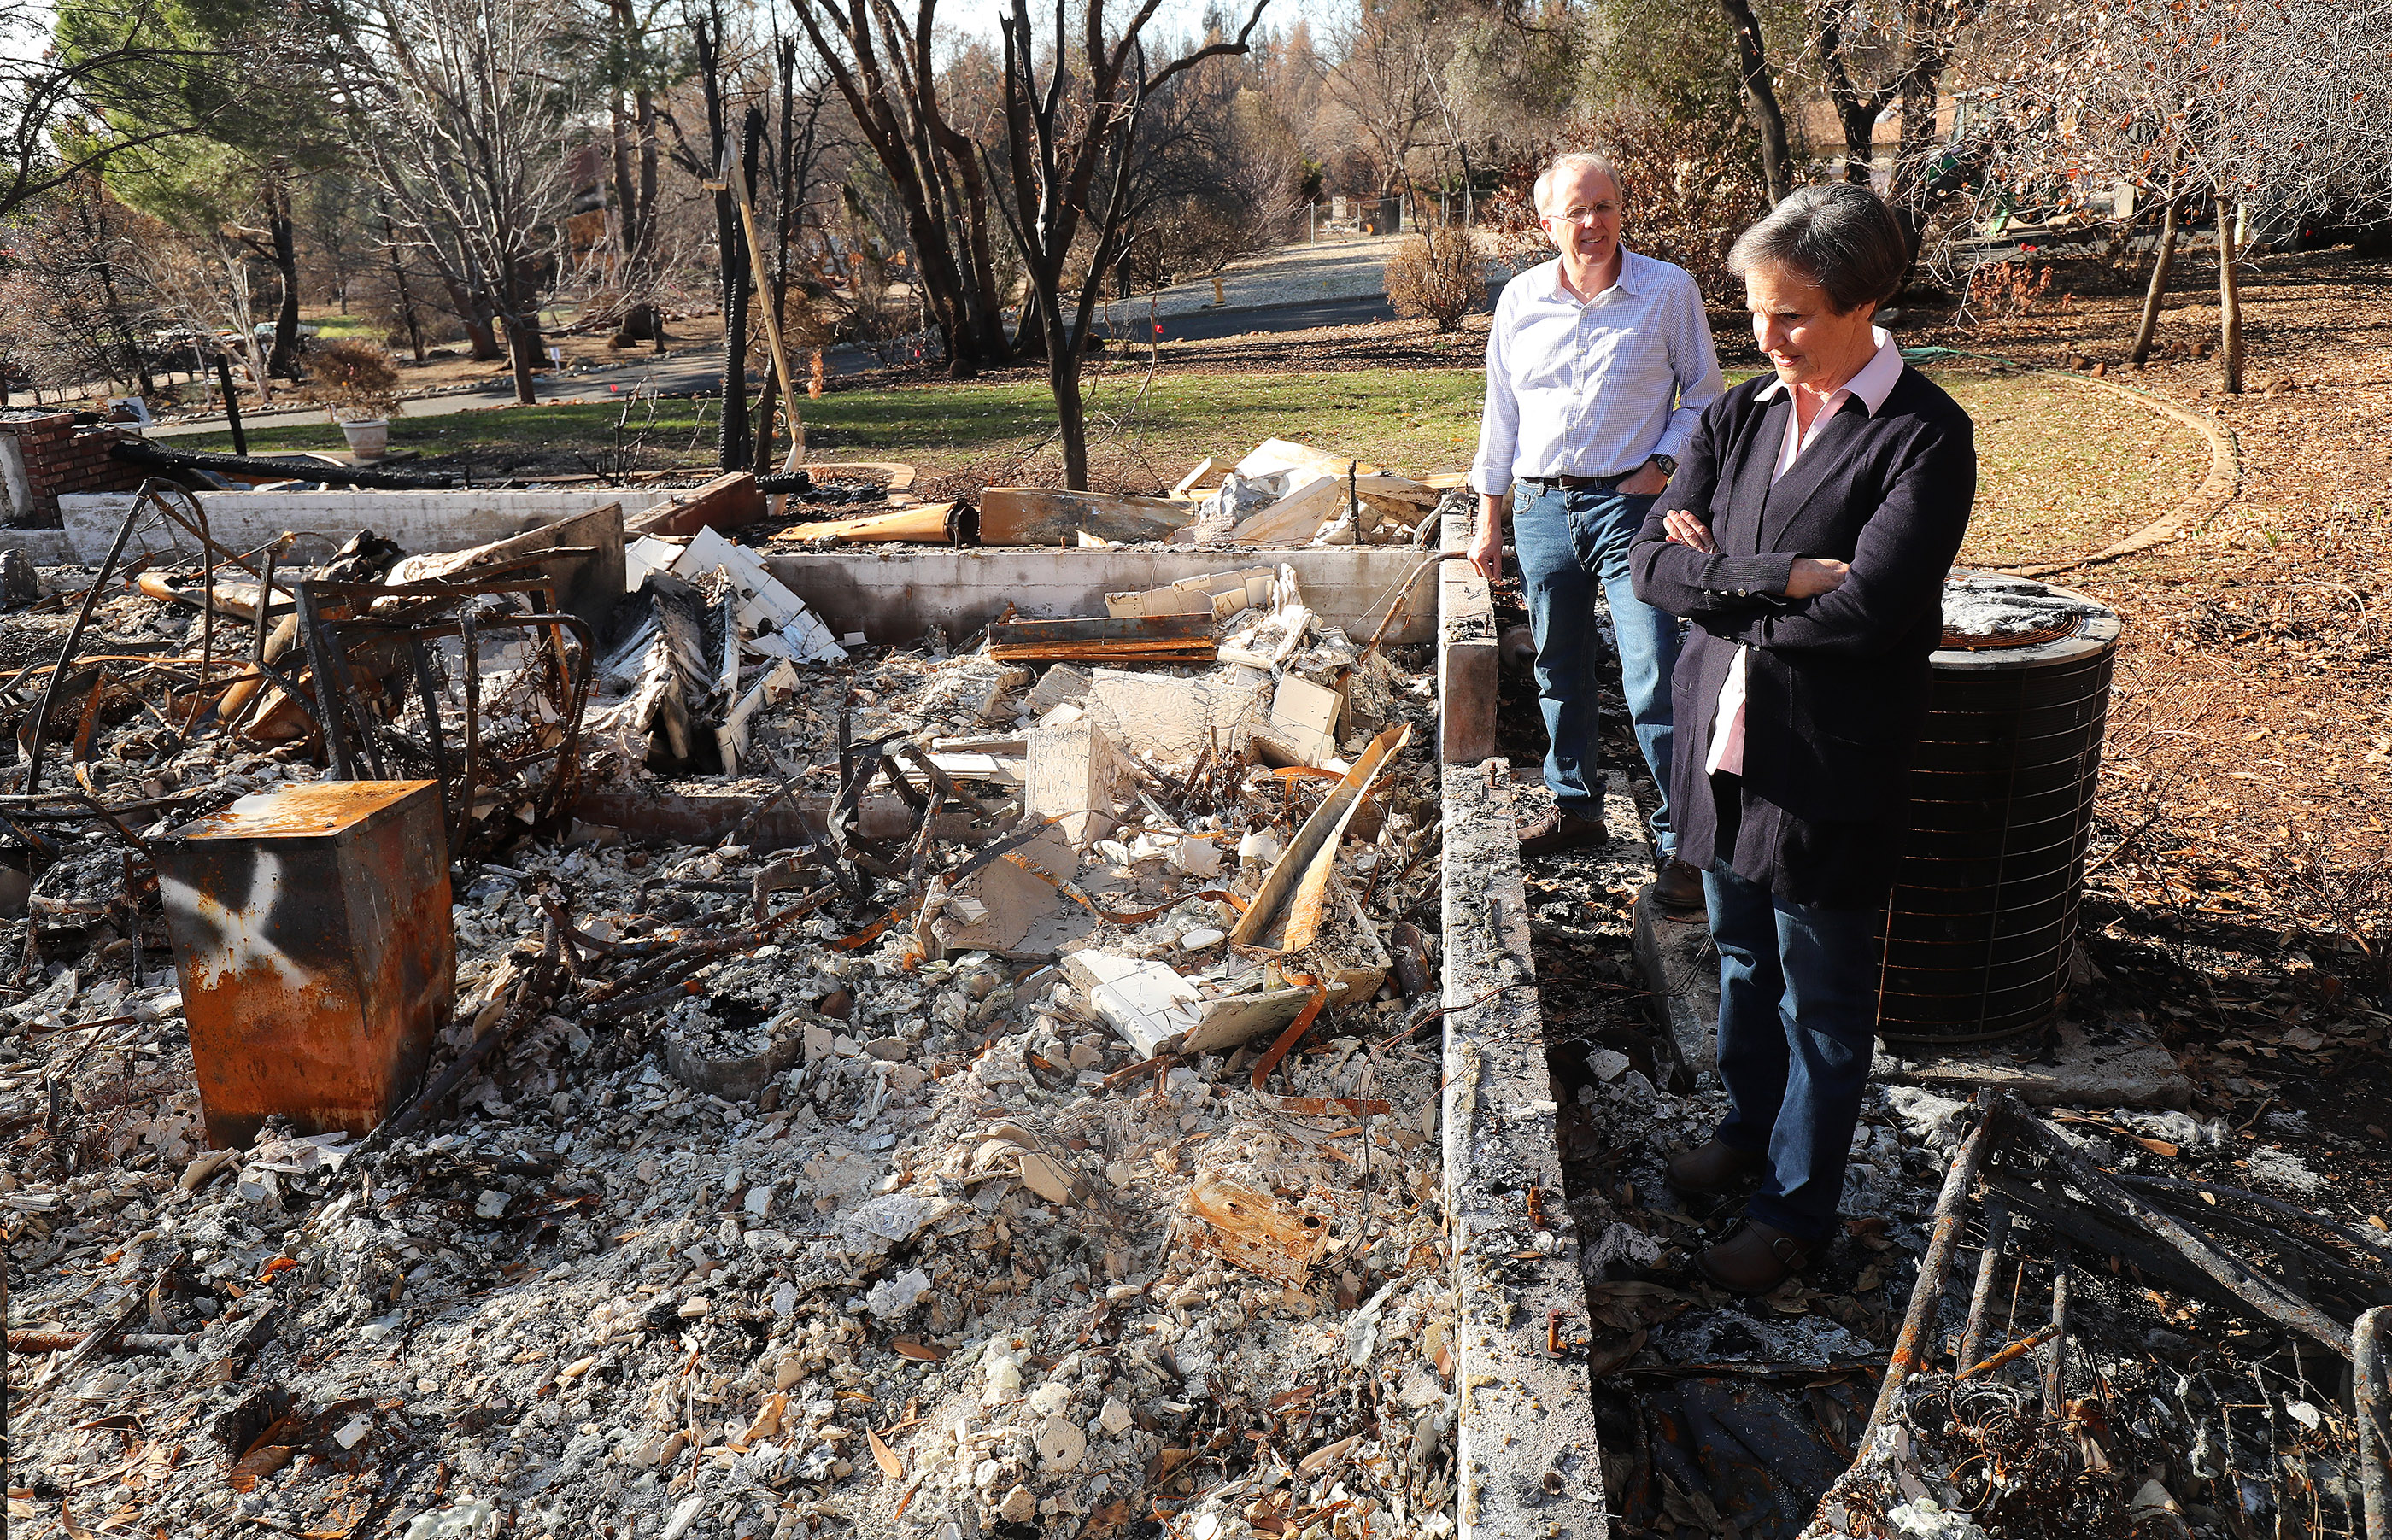 Rick and Kathie Turner look over their destroyed home in Paradise, California, on Saturday, Jan. 12, 2019, two months after the Camp Fire destroyed more than 18,000 homes and businesses.